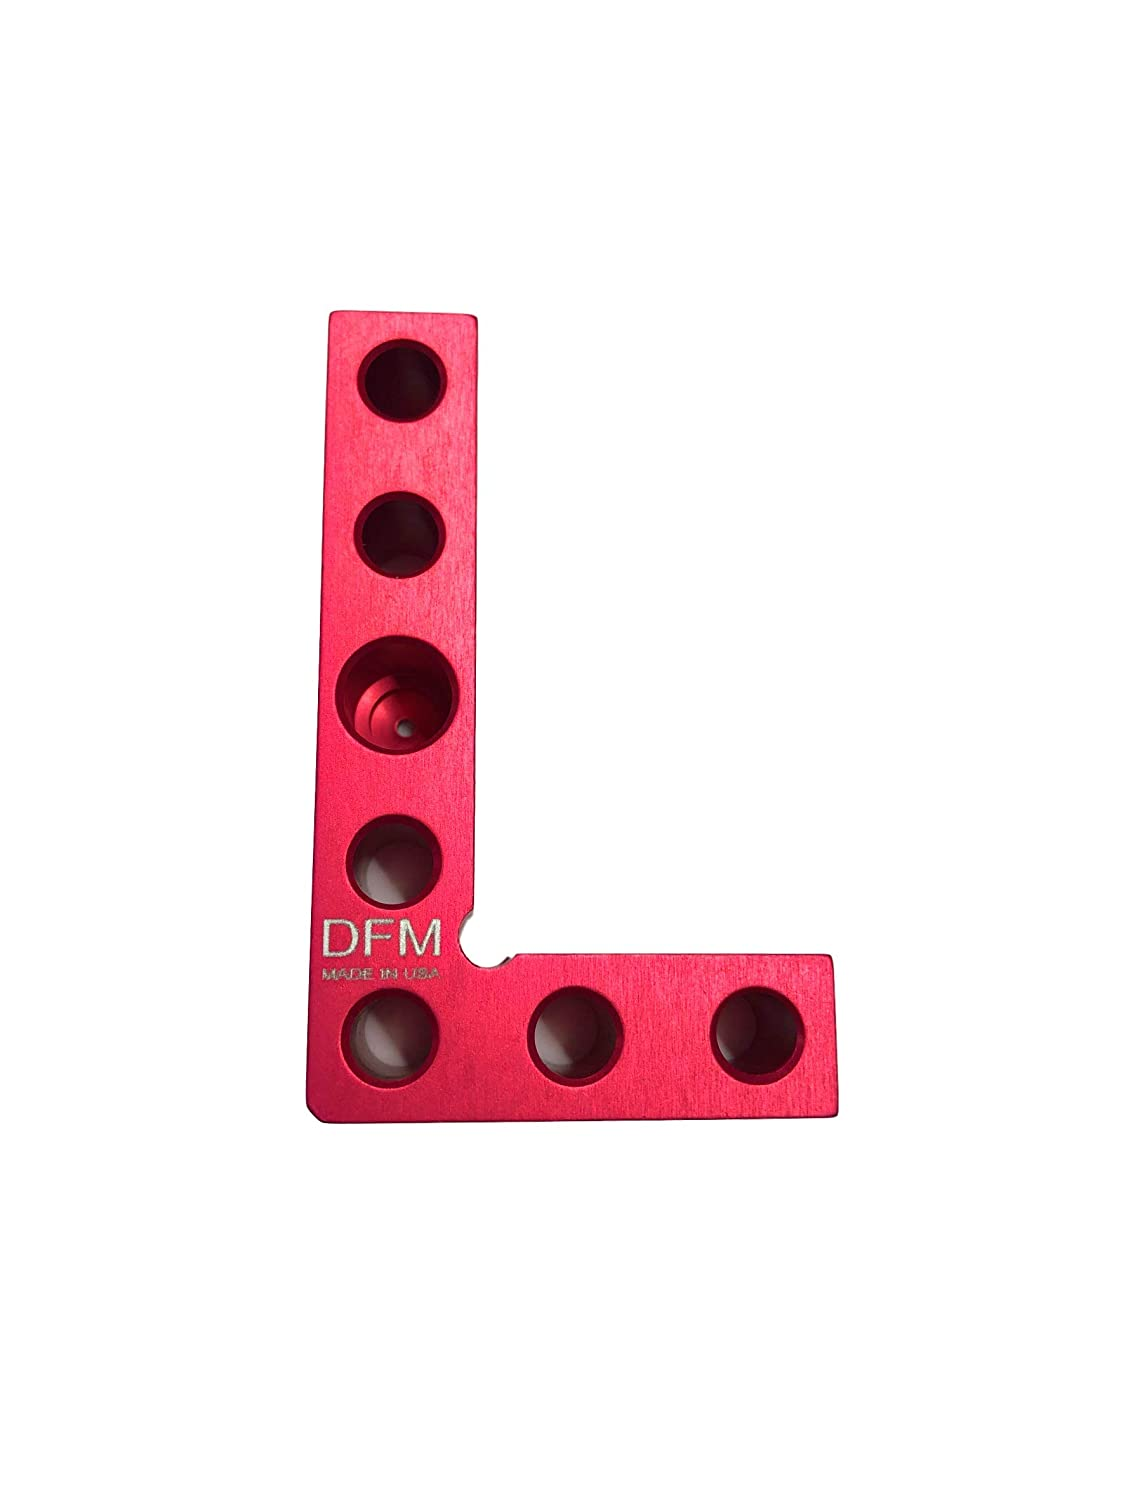 Blue DFM Small Square and Marking Center Finder Precision MADE IN USA